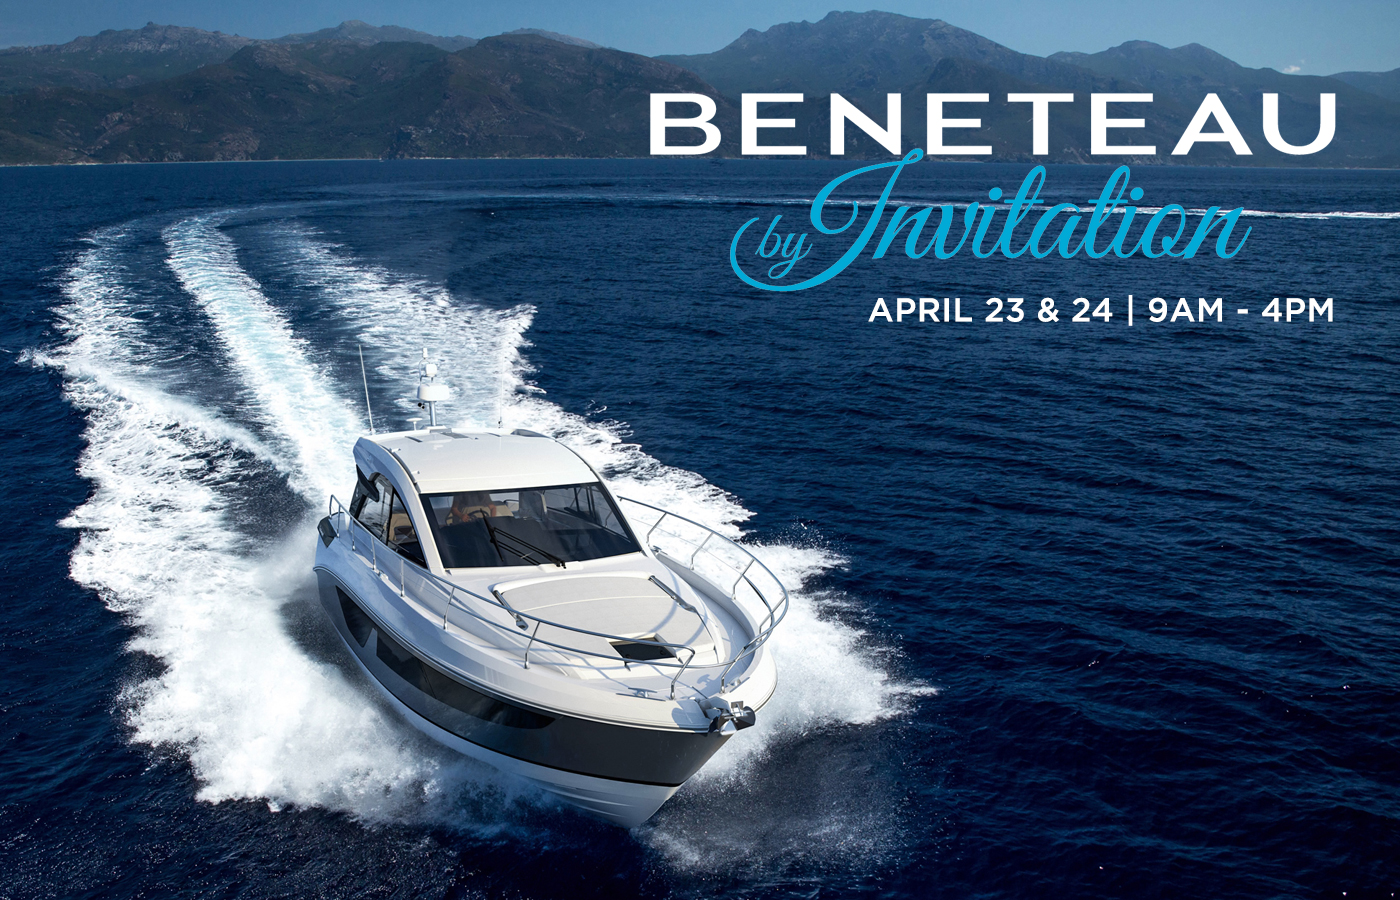 Beneteau By Invitation Event [New Boats For Sale]